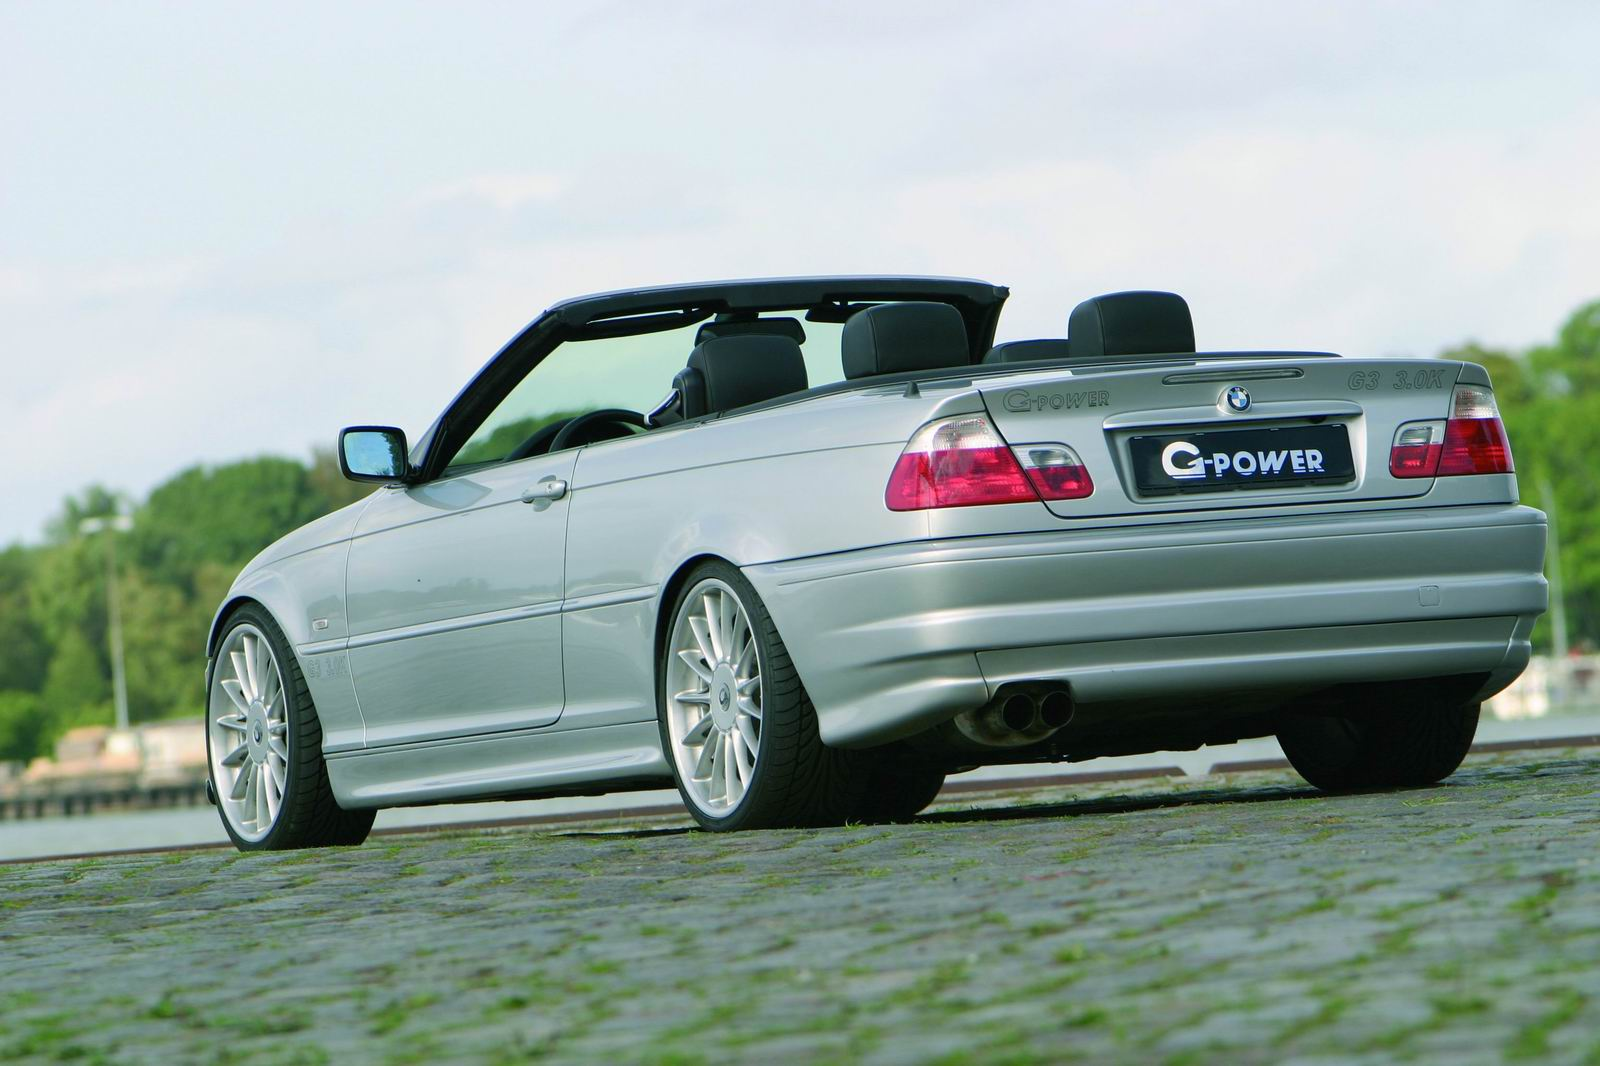 g power bmw 3 series cabrio e46 photos photogallery with 10 pics. Black Bedroom Furniture Sets. Home Design Ideas